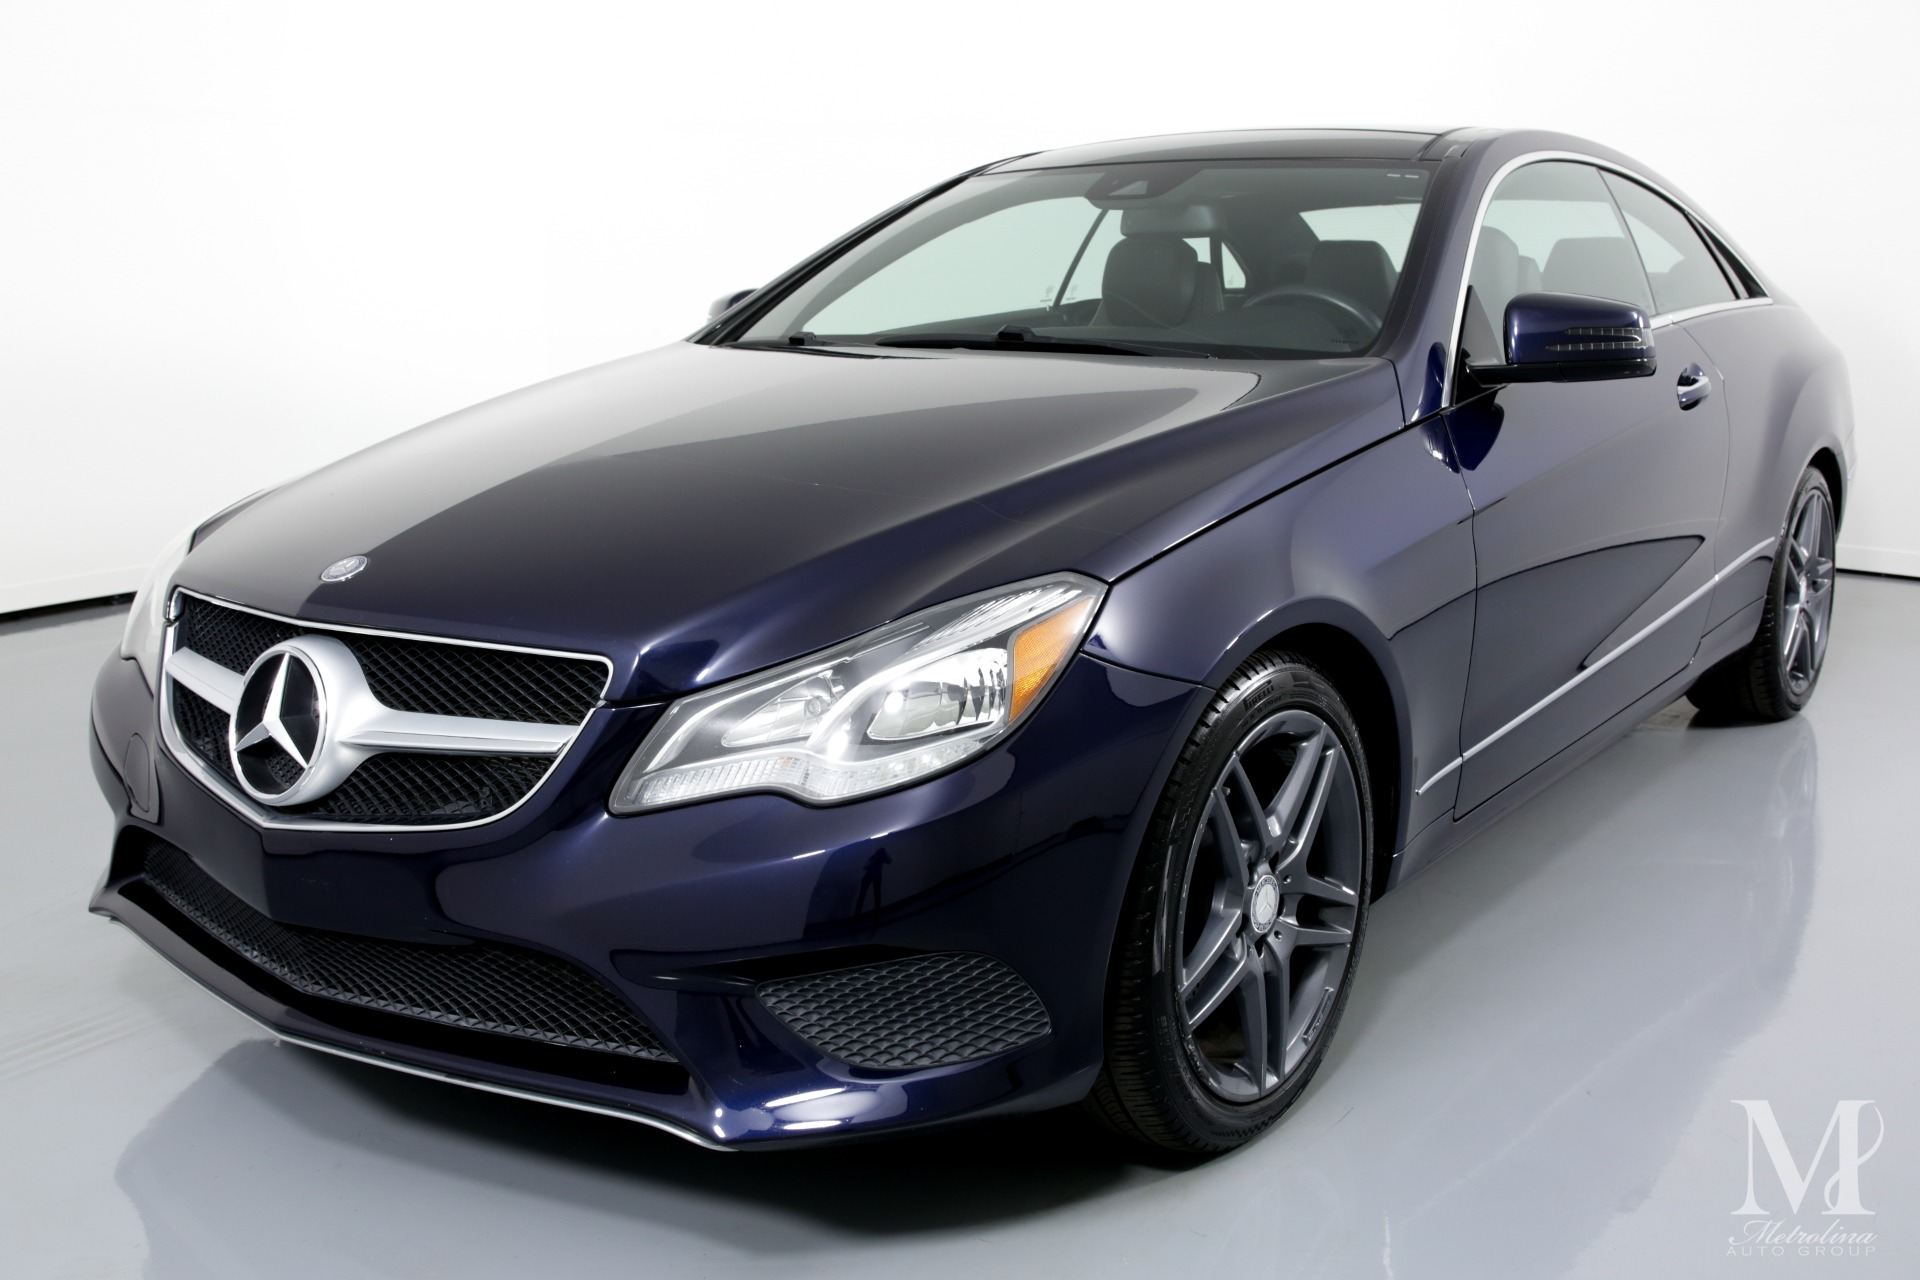 Used 2014 Mercedes-Benz E-Class E 350 4MATIC AWD 2dr Coupe for sale Sold at Metrolina Auto Group in Charlotte NC 28217 - 4